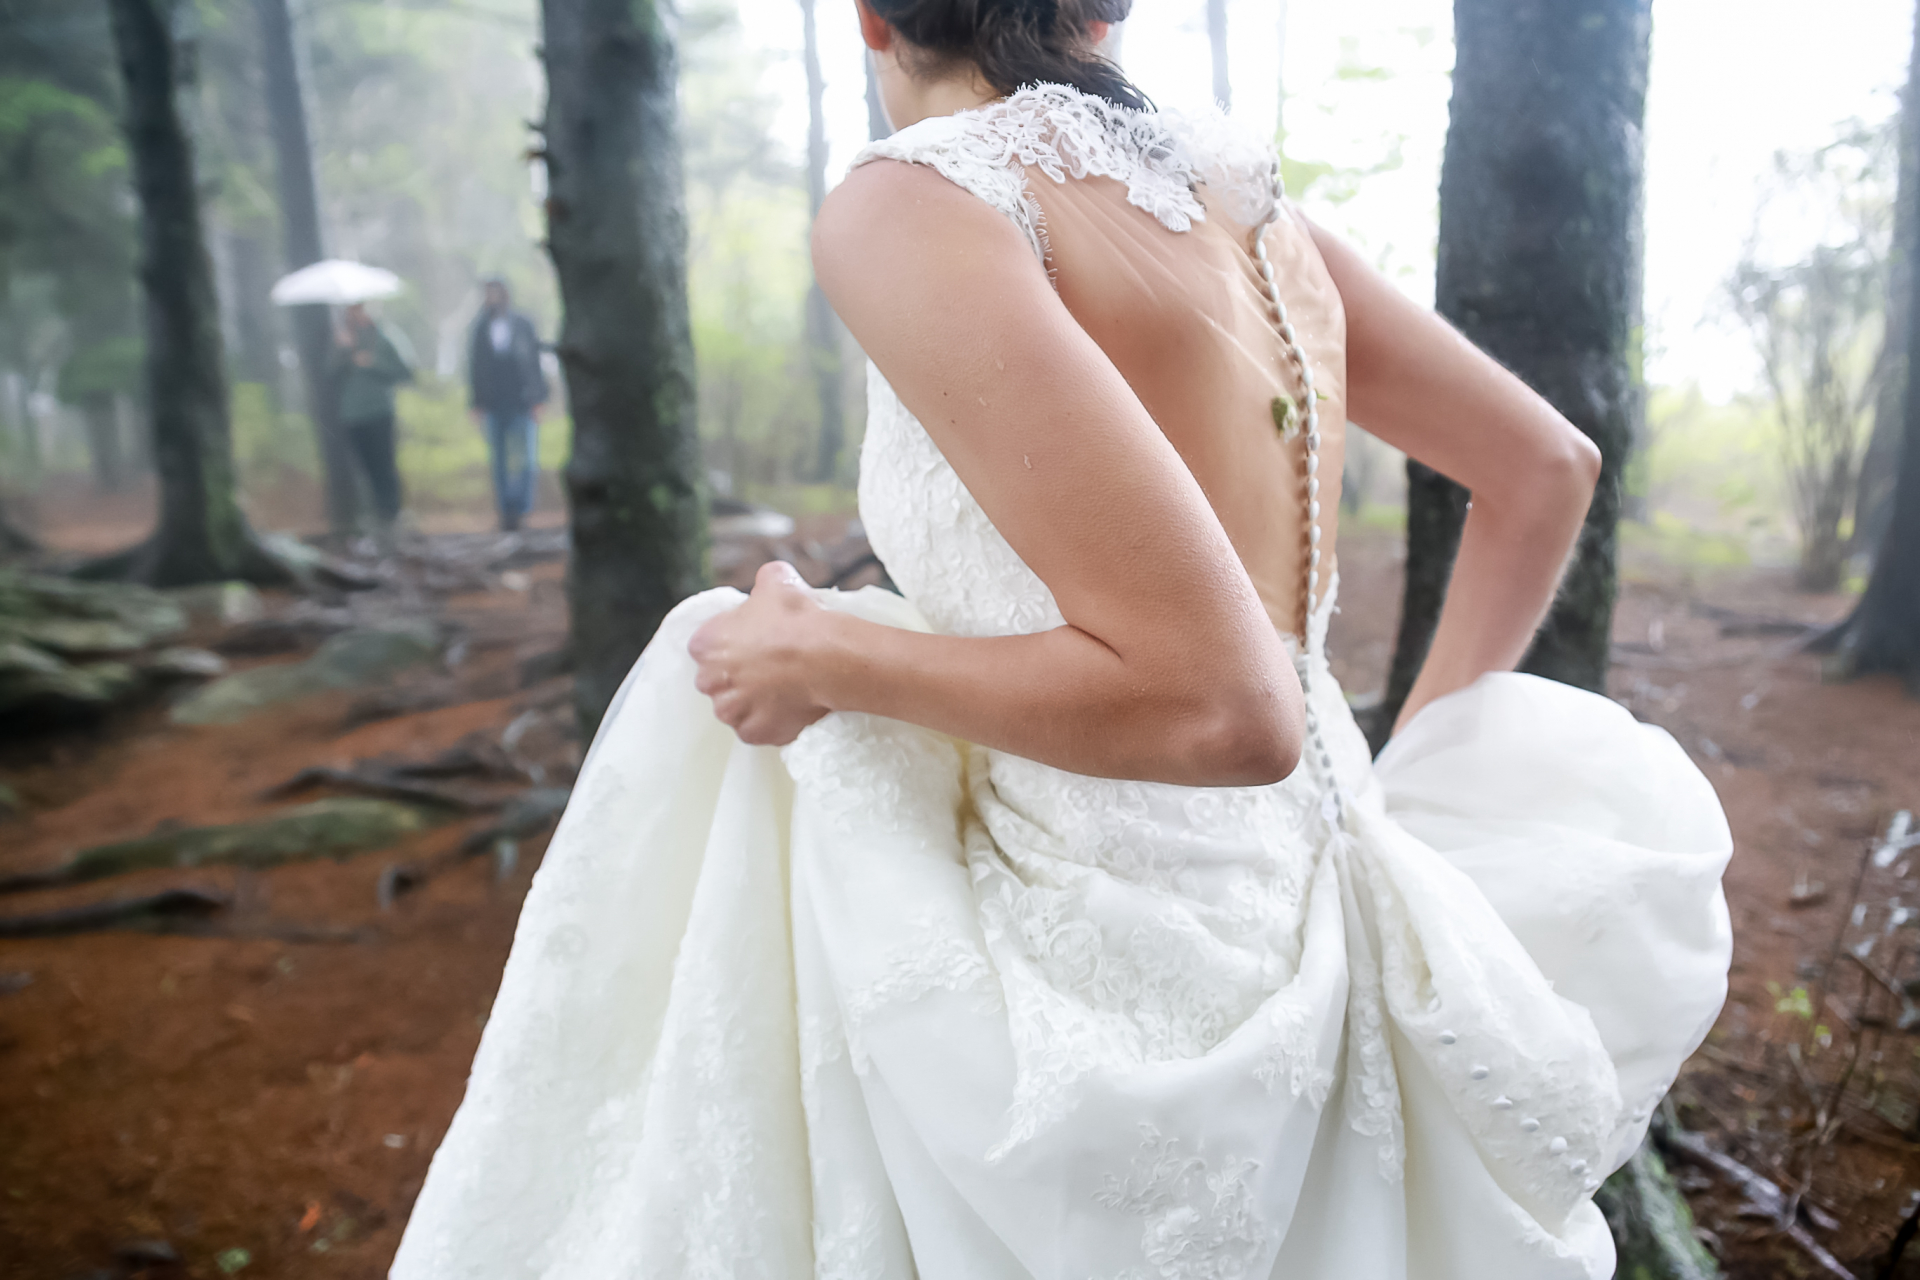 Stand of Trees, Black Balsam Knob, North Carolina Elopement Ceremony Image | The bride makes her entrance in the trees